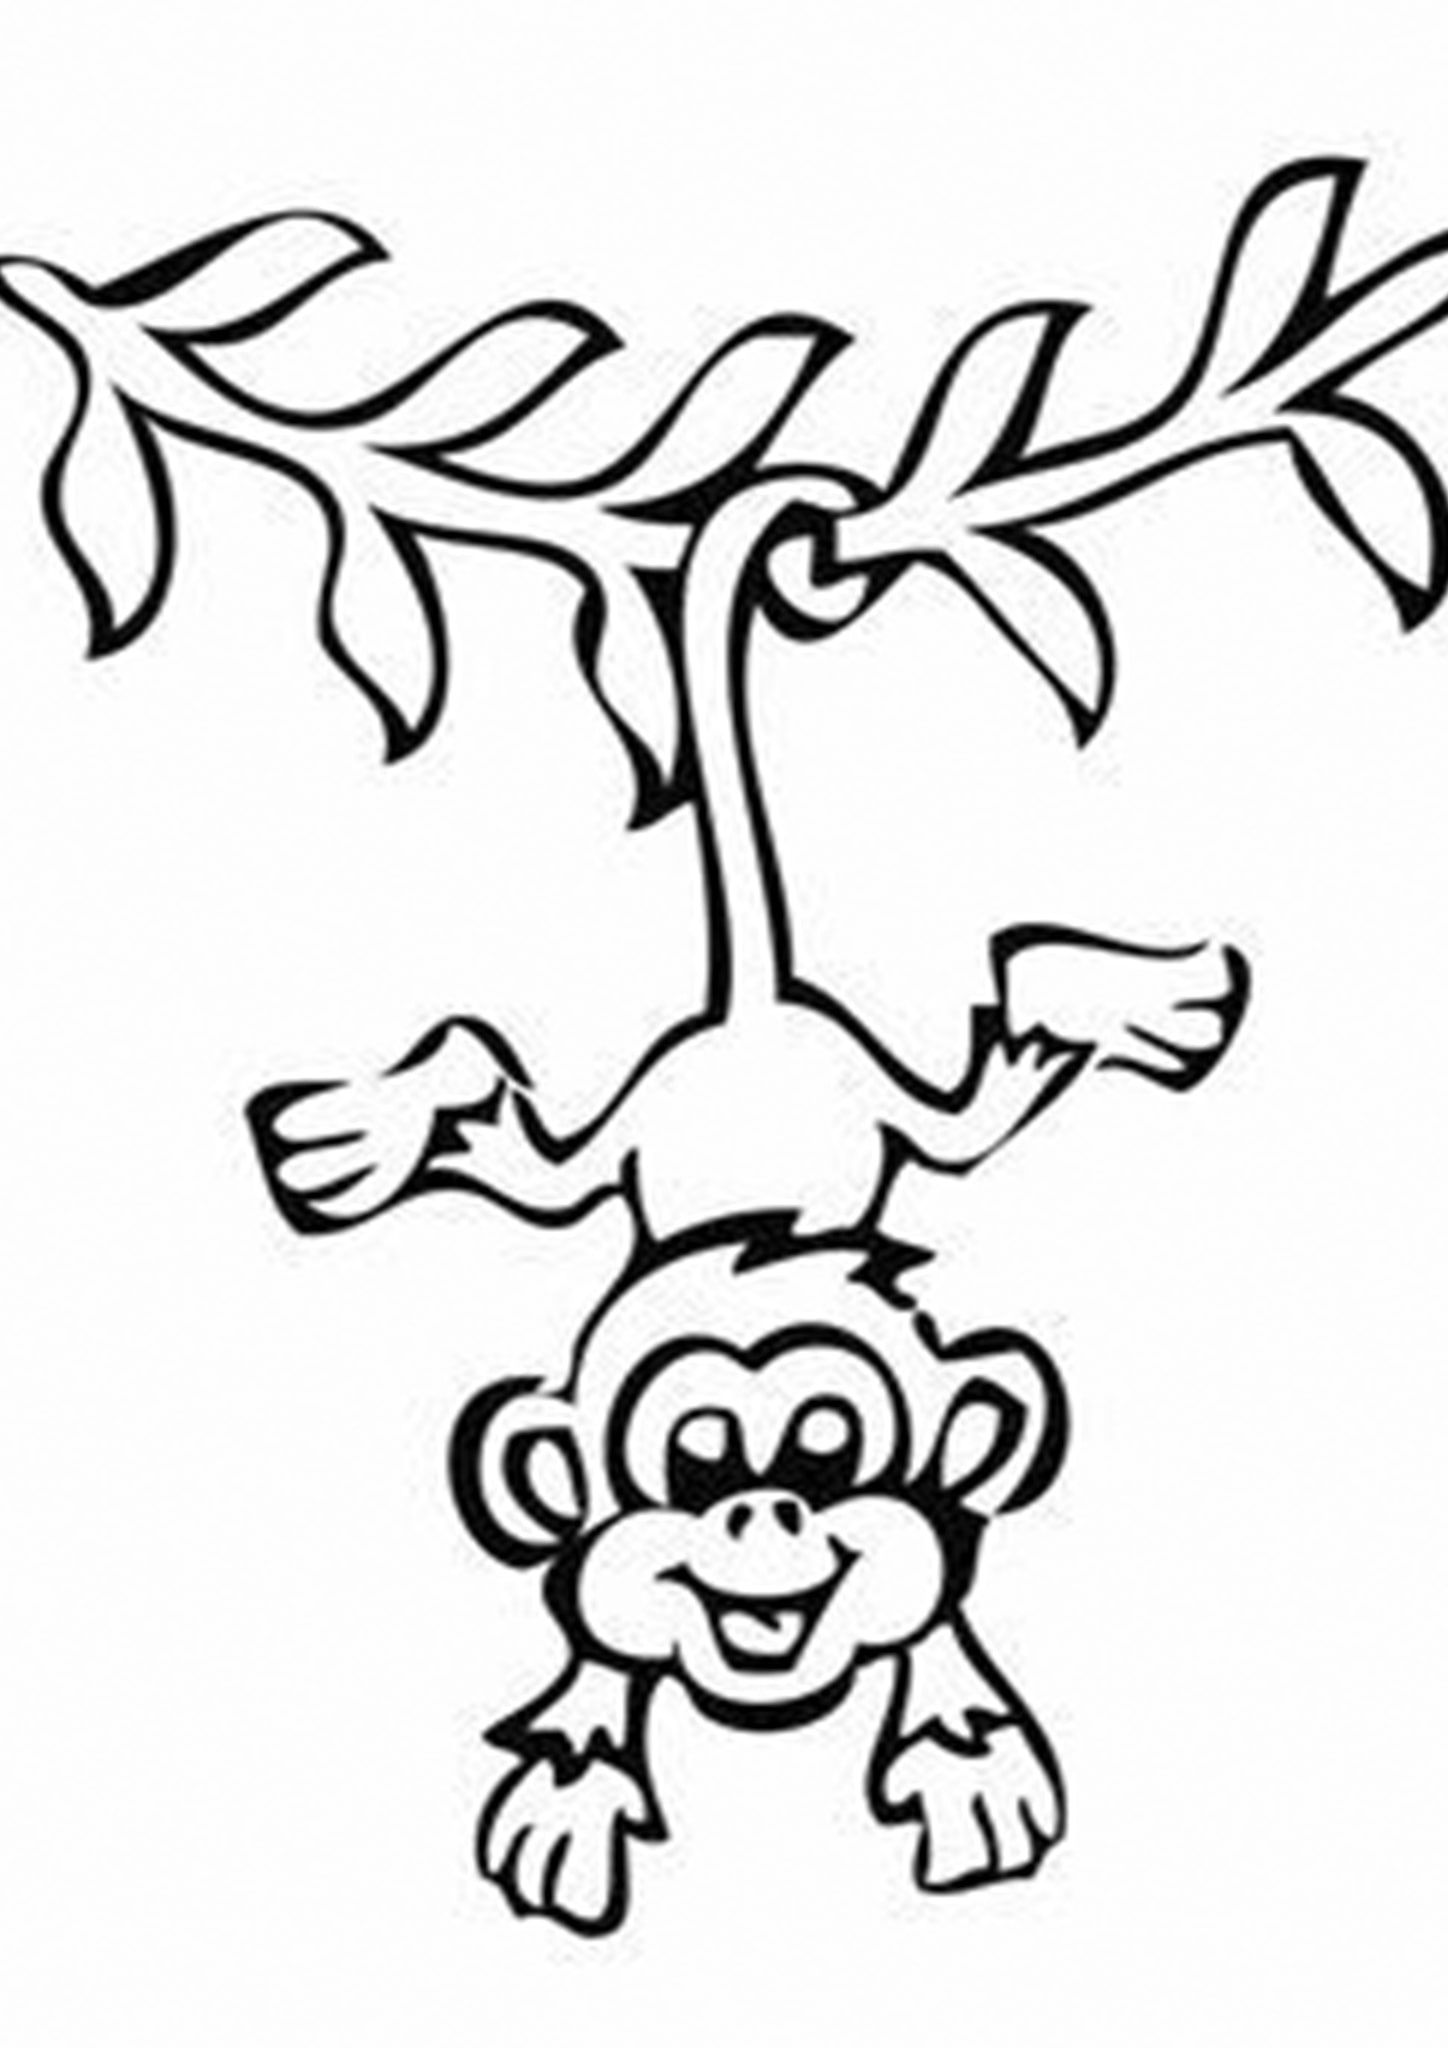 Wikeyezhuka Com Monkey Coloring Pages Easy Animal Drawings Monkey Drawing Cute